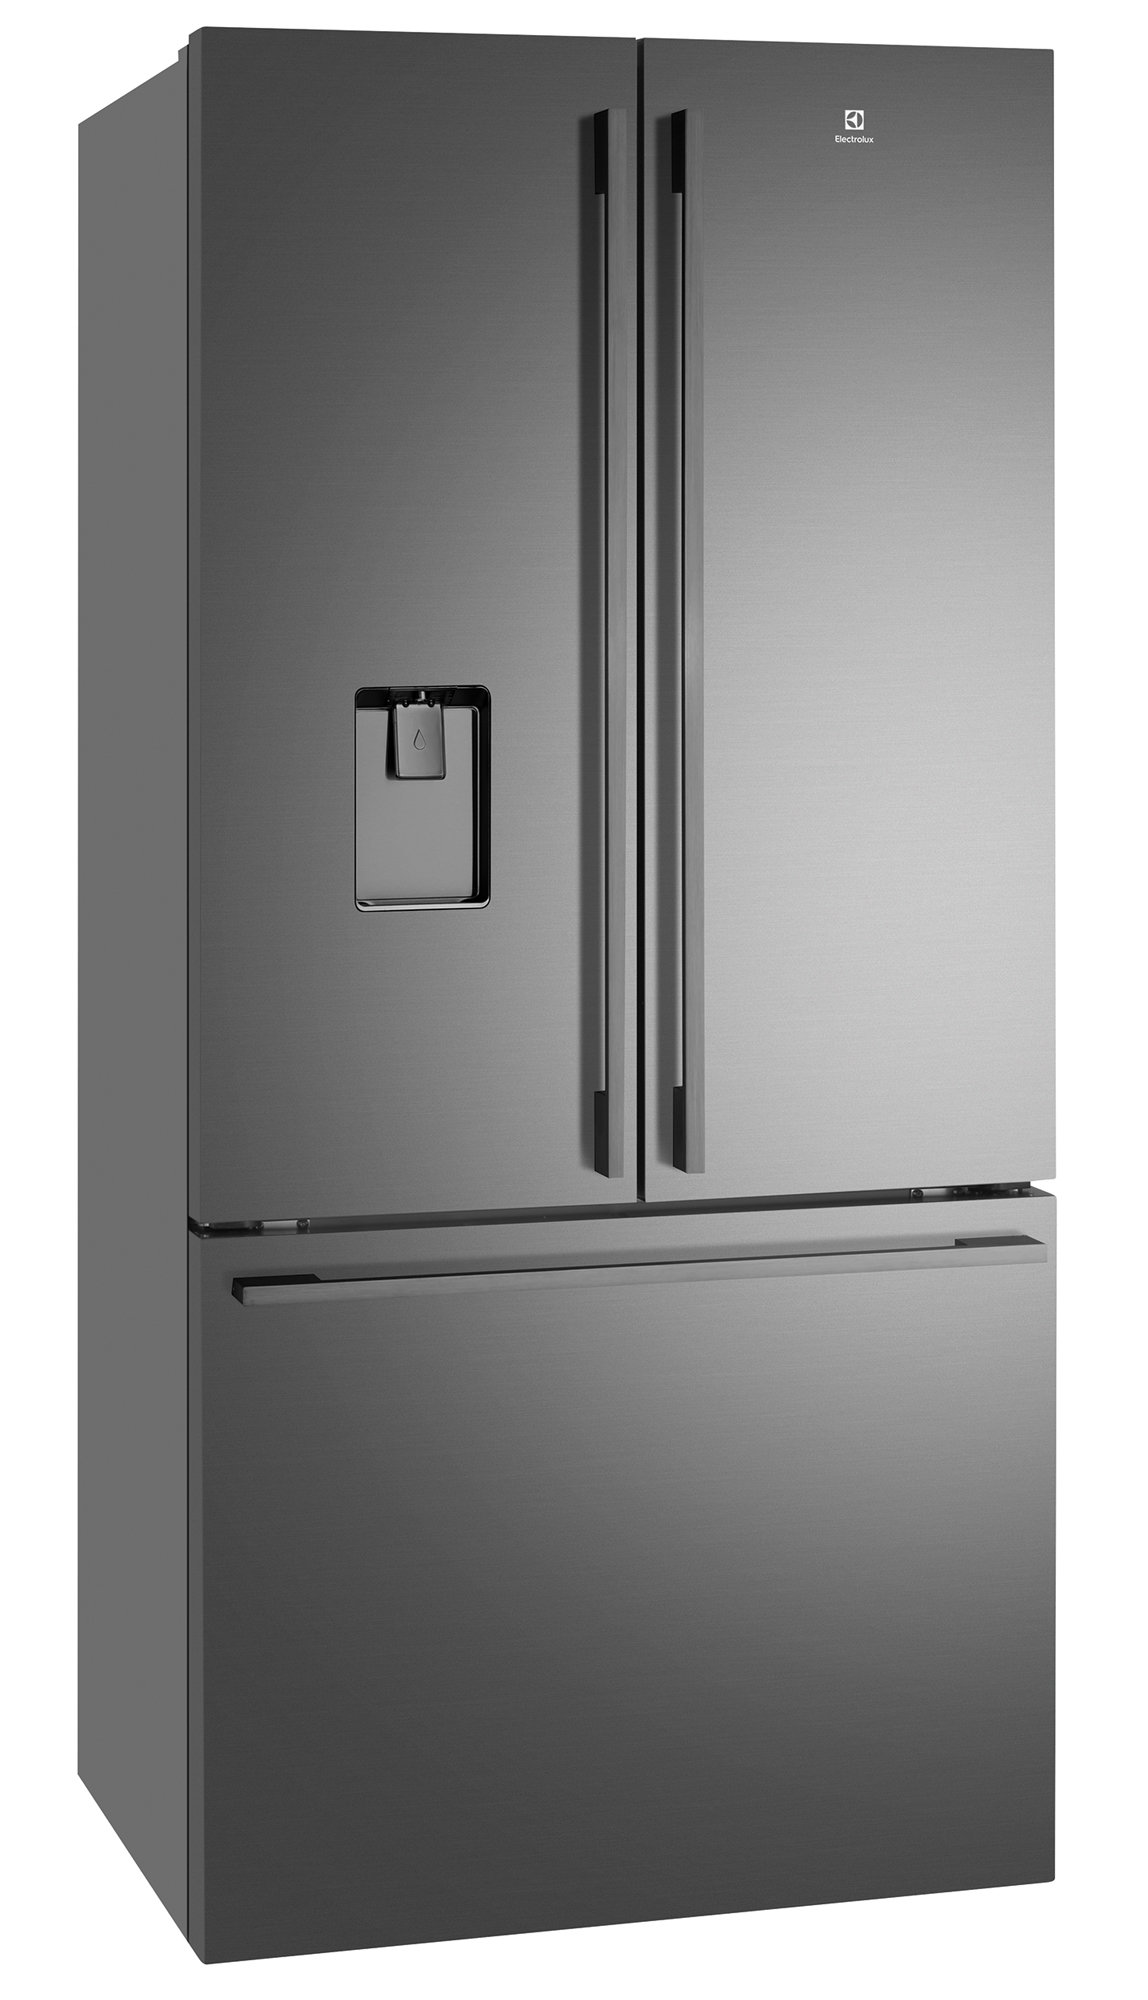 Electrolux 524l Fridge Dark Stainless Factory Second